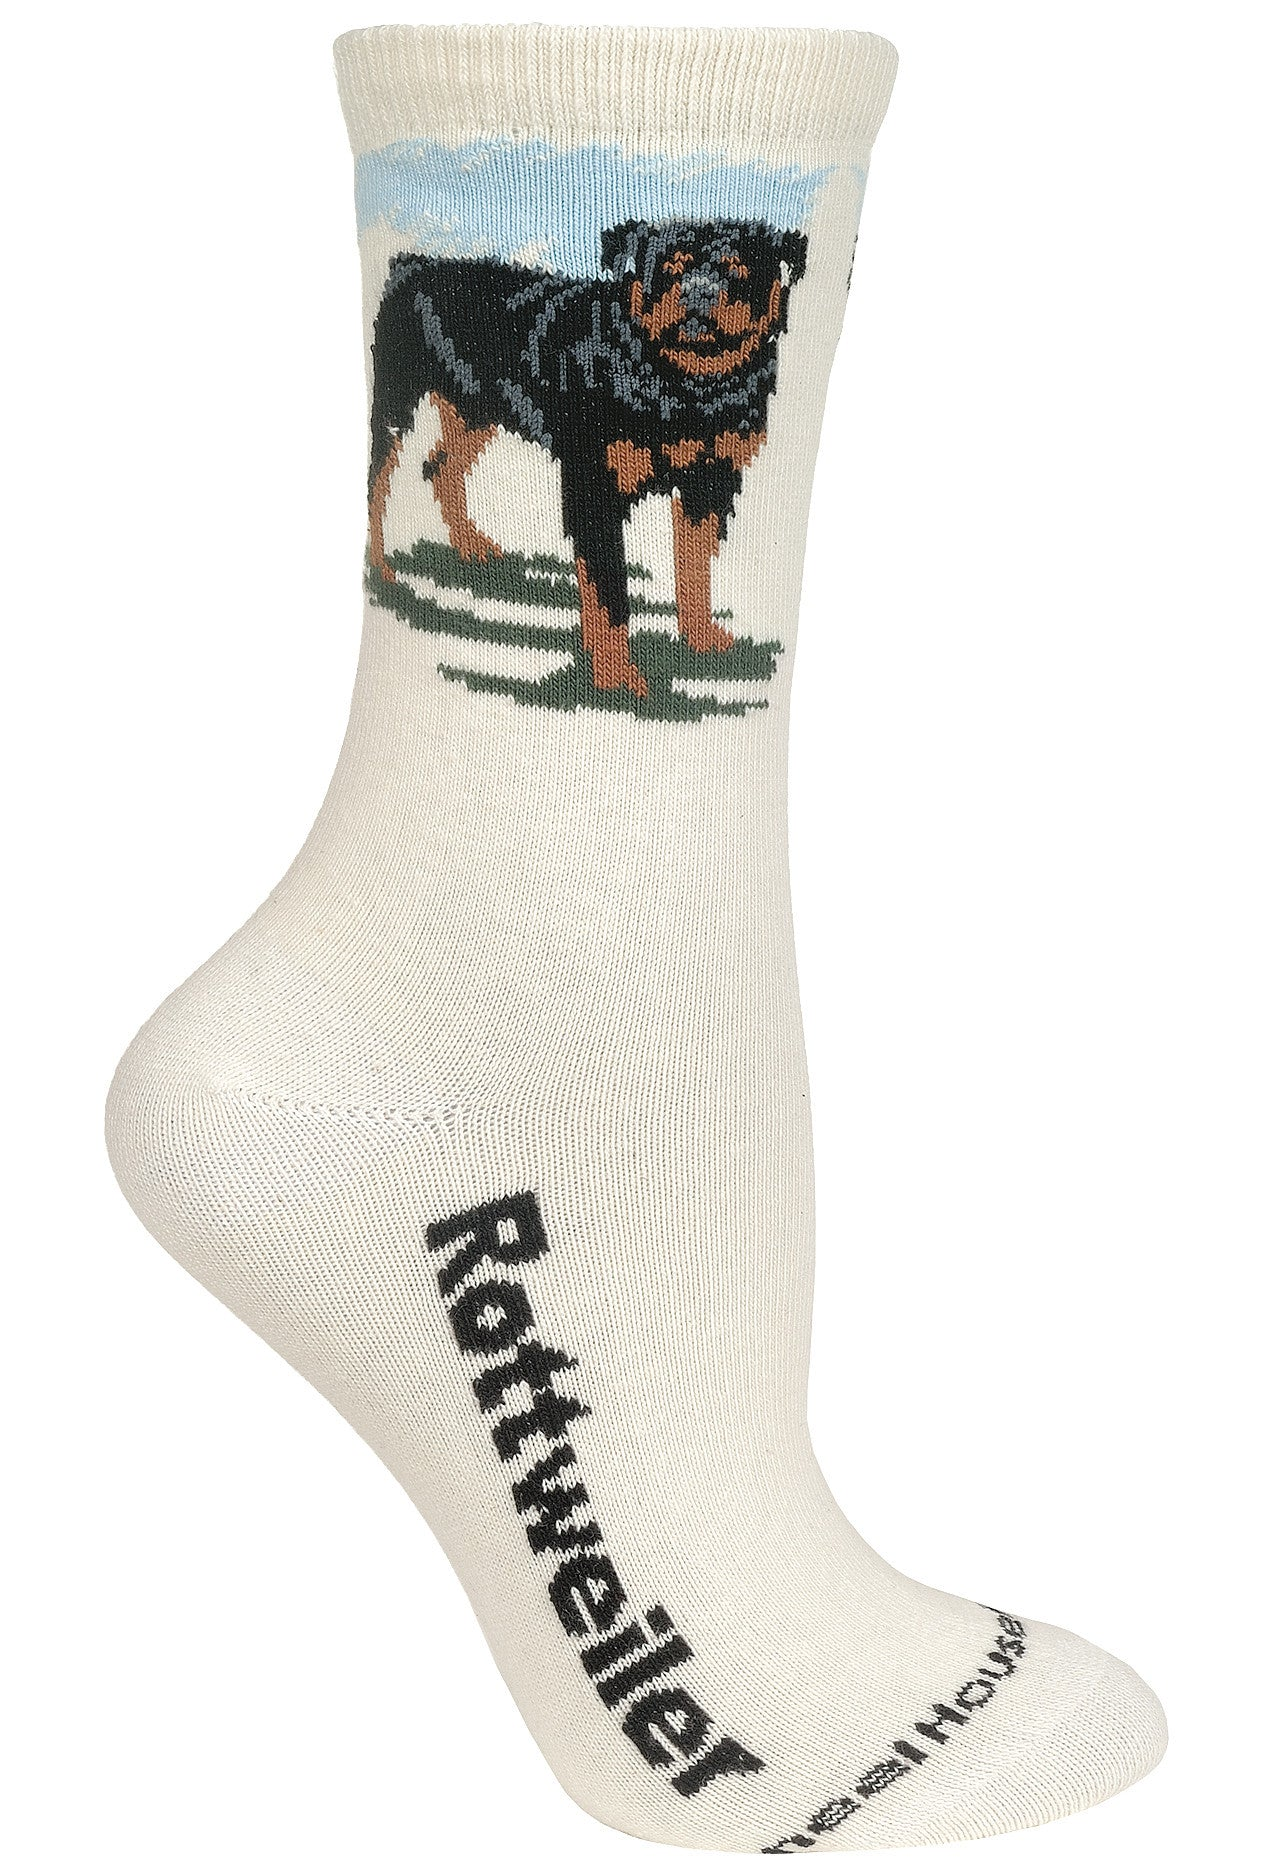 Rottweiler on Natural Socks